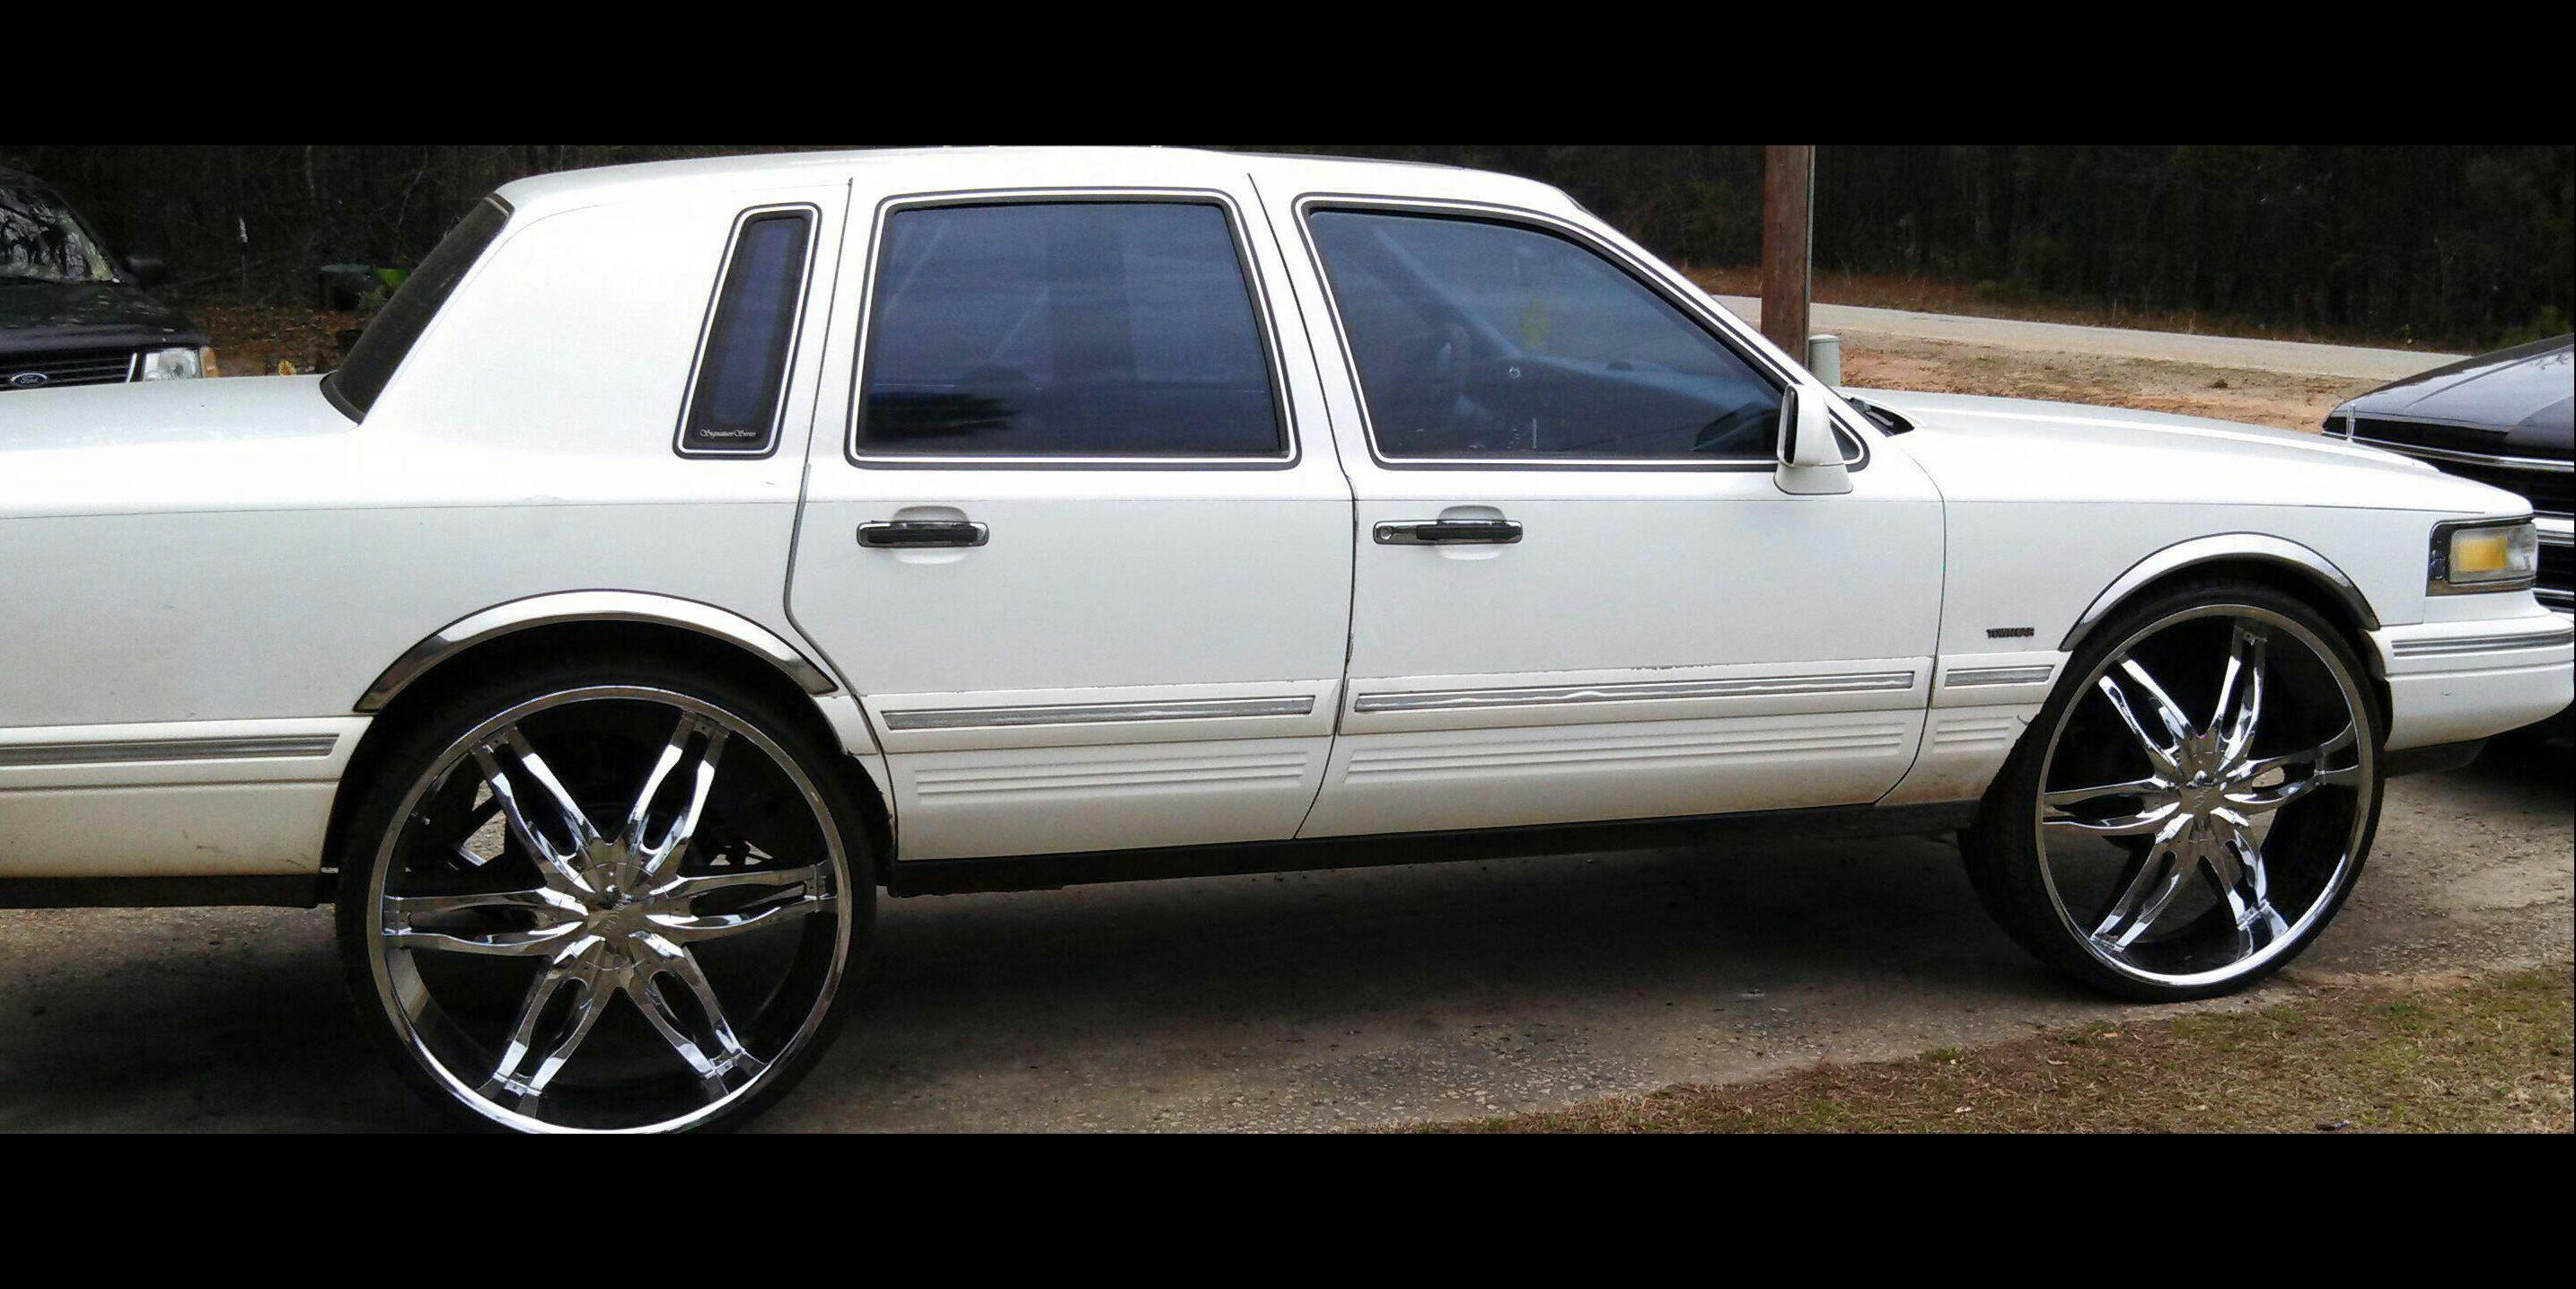 Brai01's 1995 Lincoln Town-Car